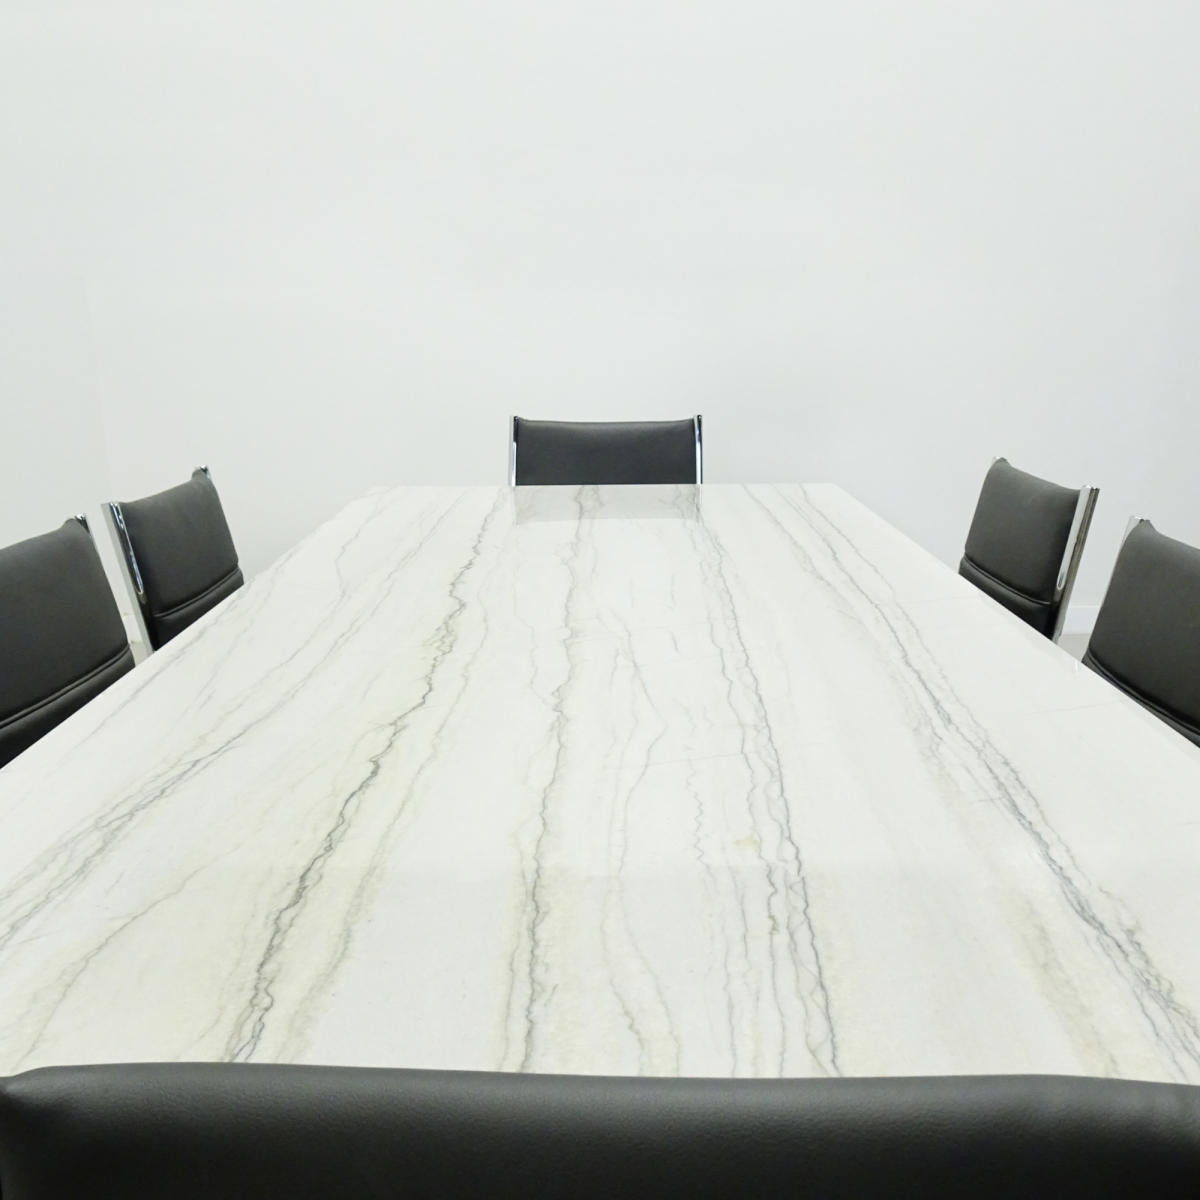 96 In. Axis Table with Stone Top